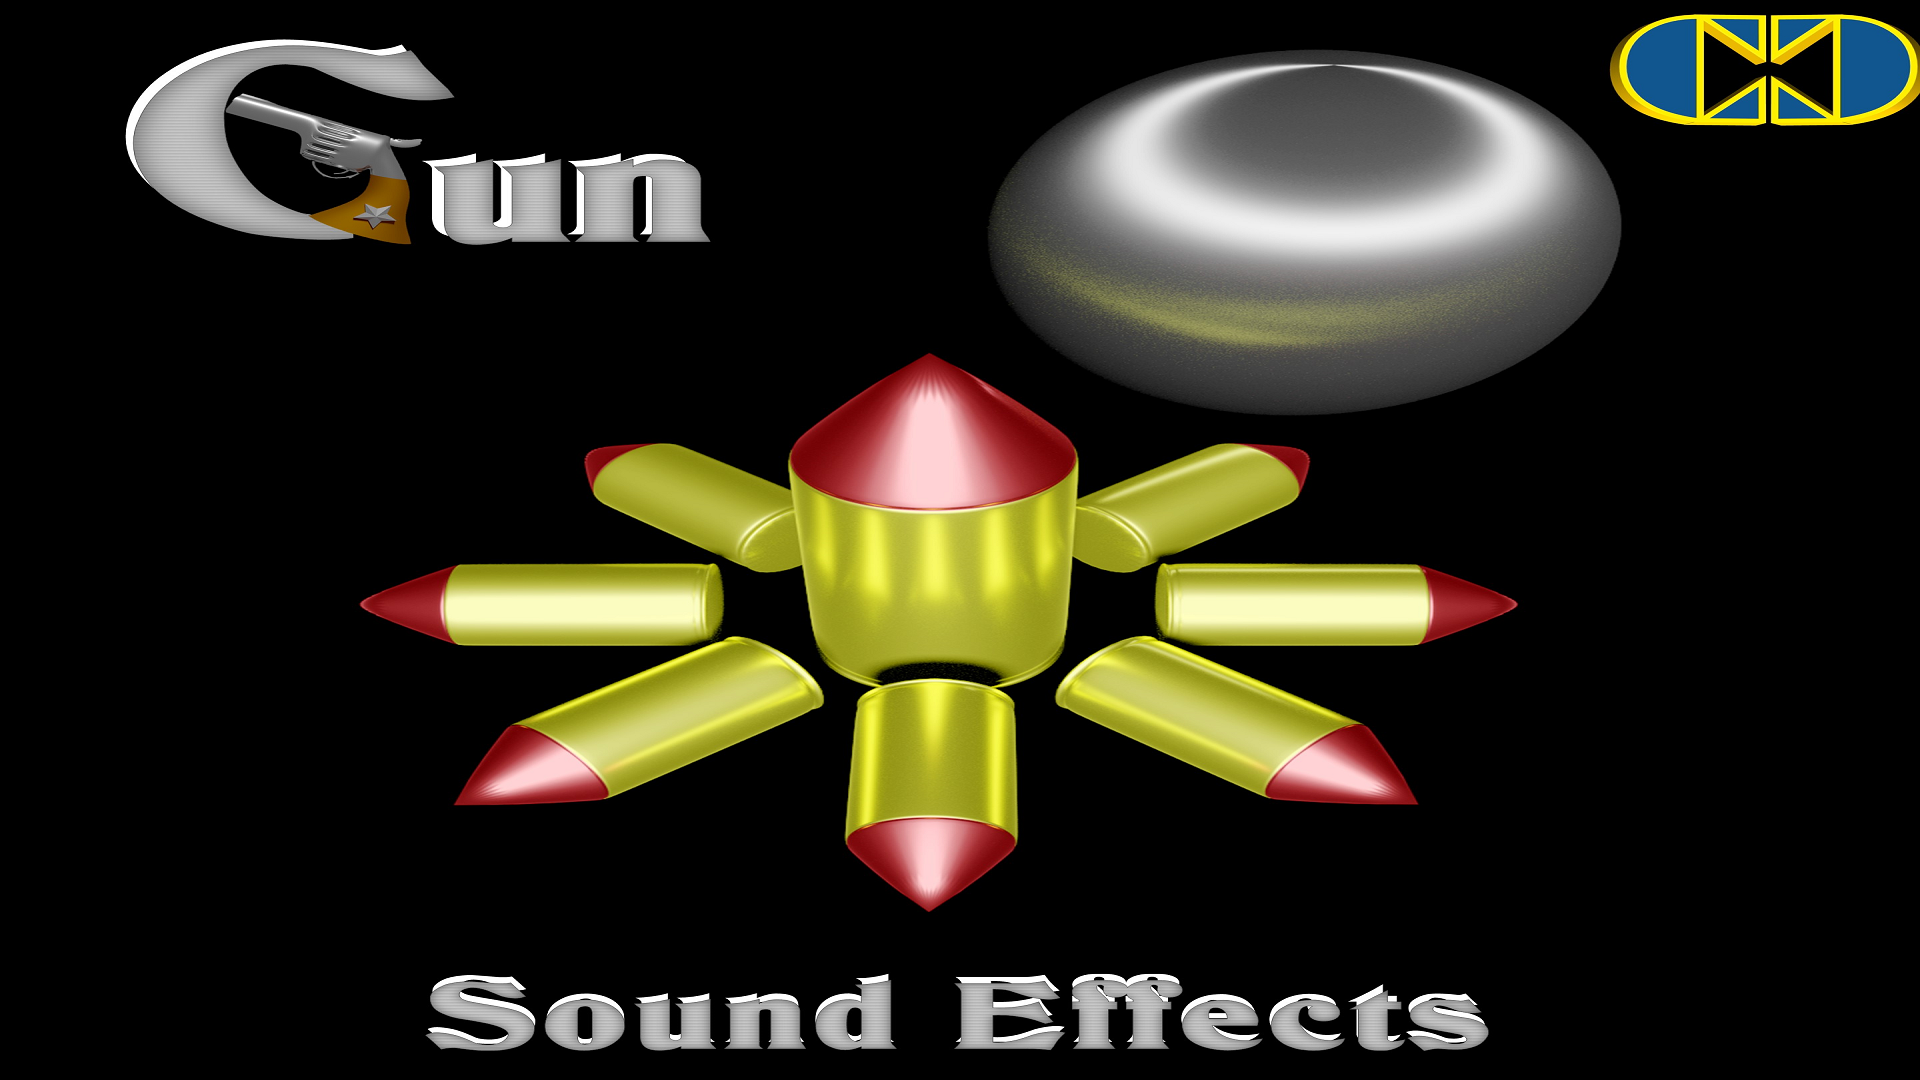 Gun Loops and Sound Effects by Cali Crazed Beats in Sound Effects